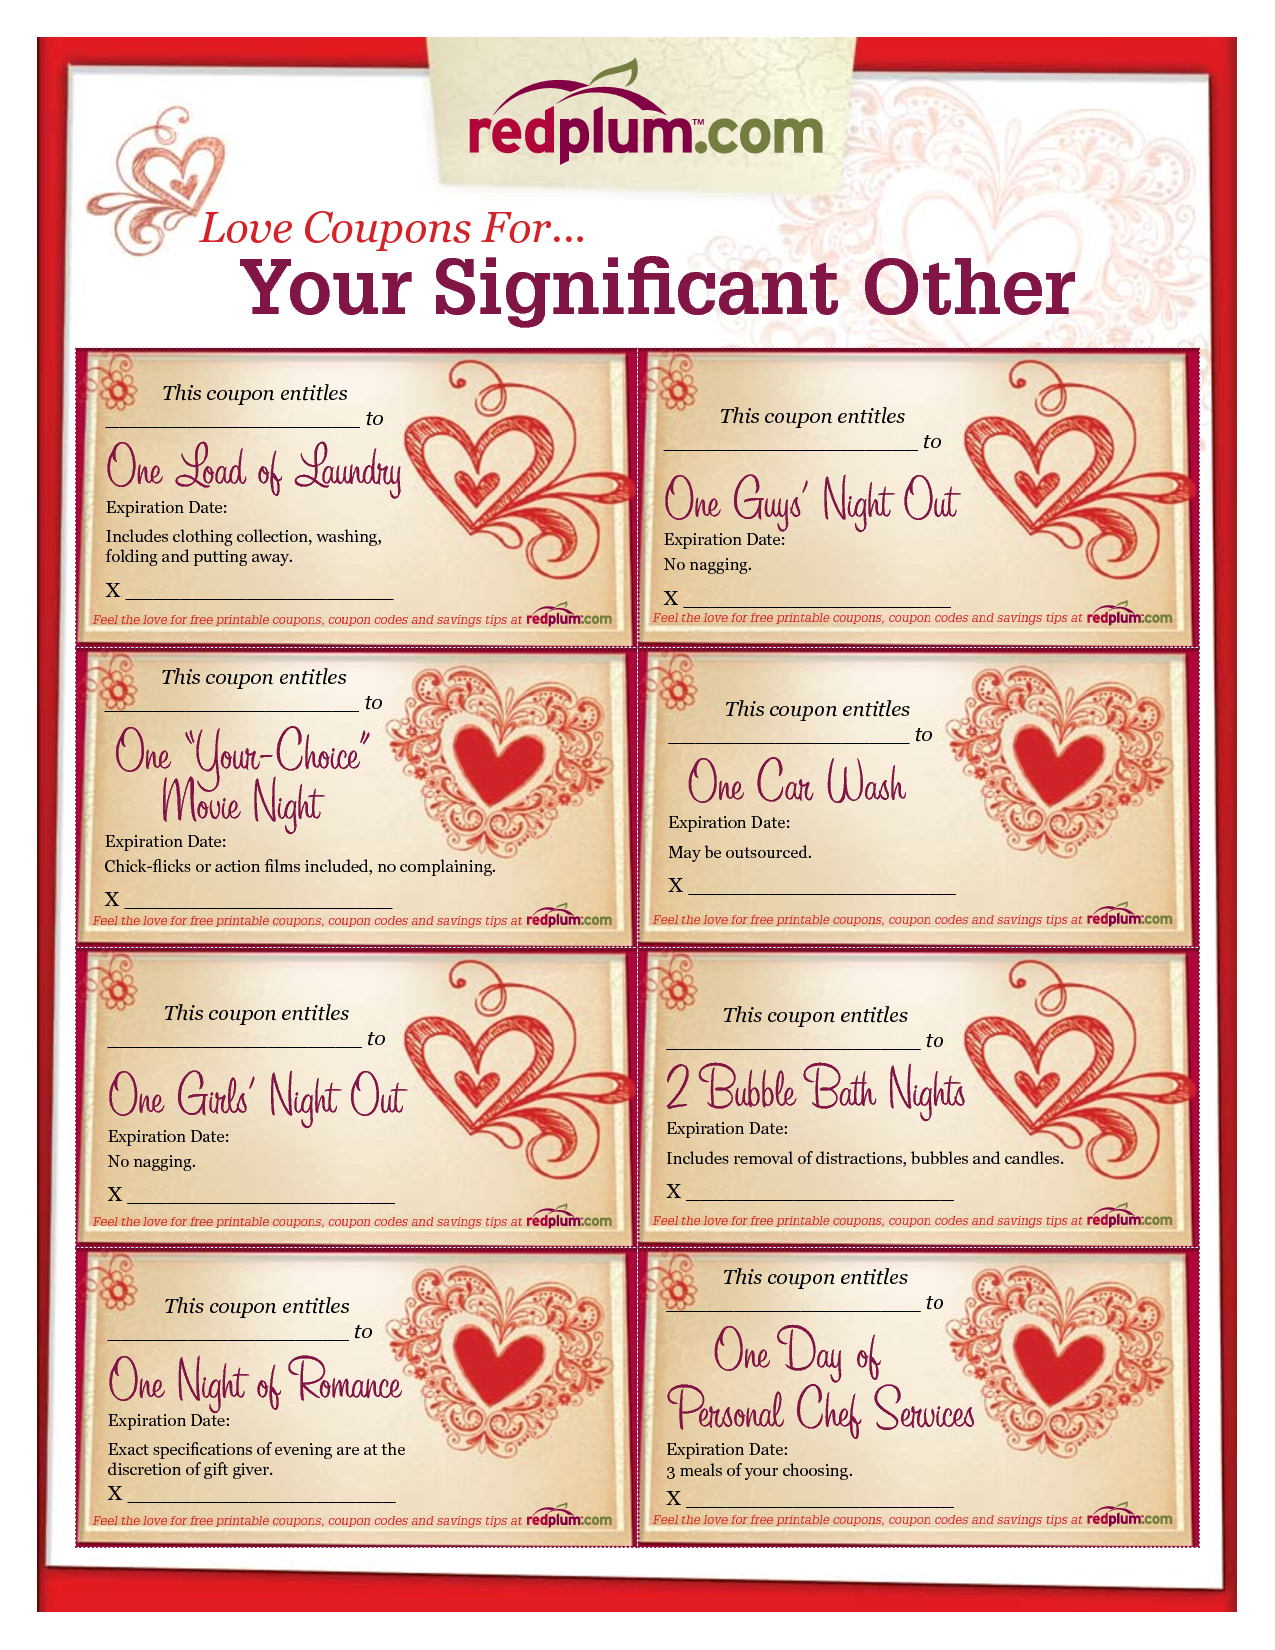 Romantic Love Coupon Template Printable | Love Coupons For Your - Free Printable Love Coupons For Wife